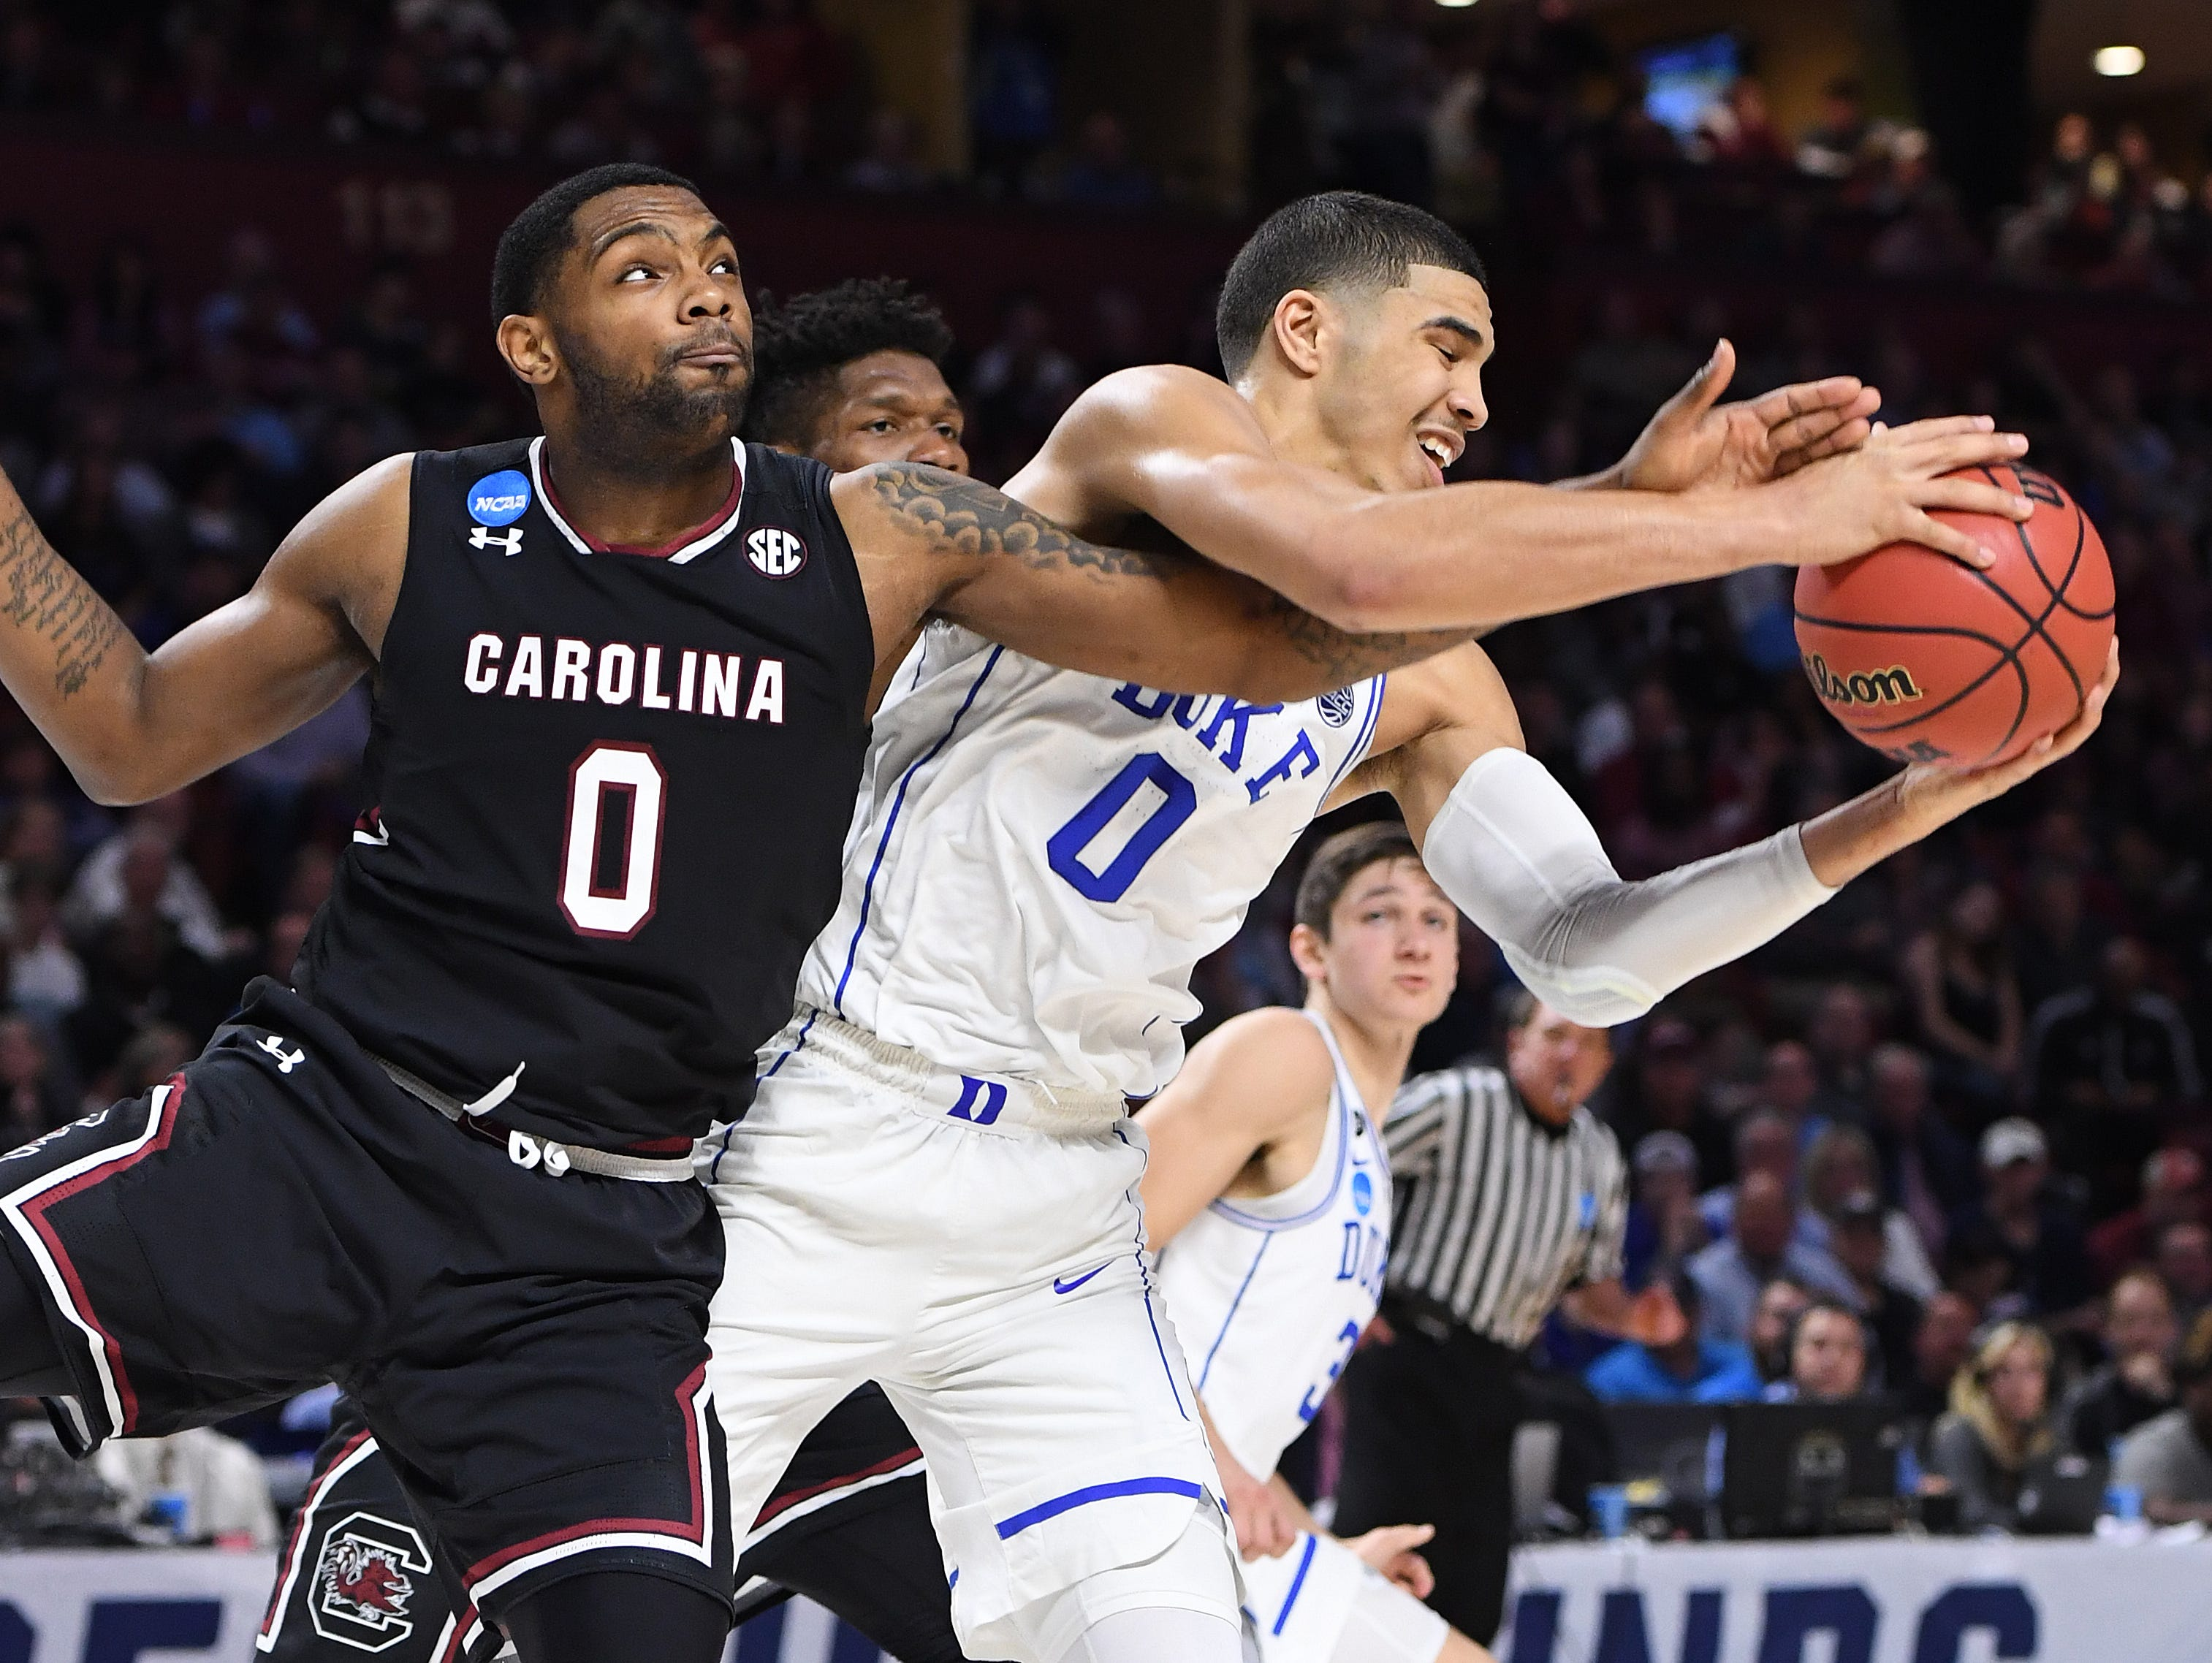 Duke forward Jayson Tatum (0) pulls down a rebound past South Carolina guard Sindarius Thornwell (0) during the 2nd round of the NCAA Tournament at Bon Secours Wellness Arena in downtown Greenville on Sunday, March 19, 2017.